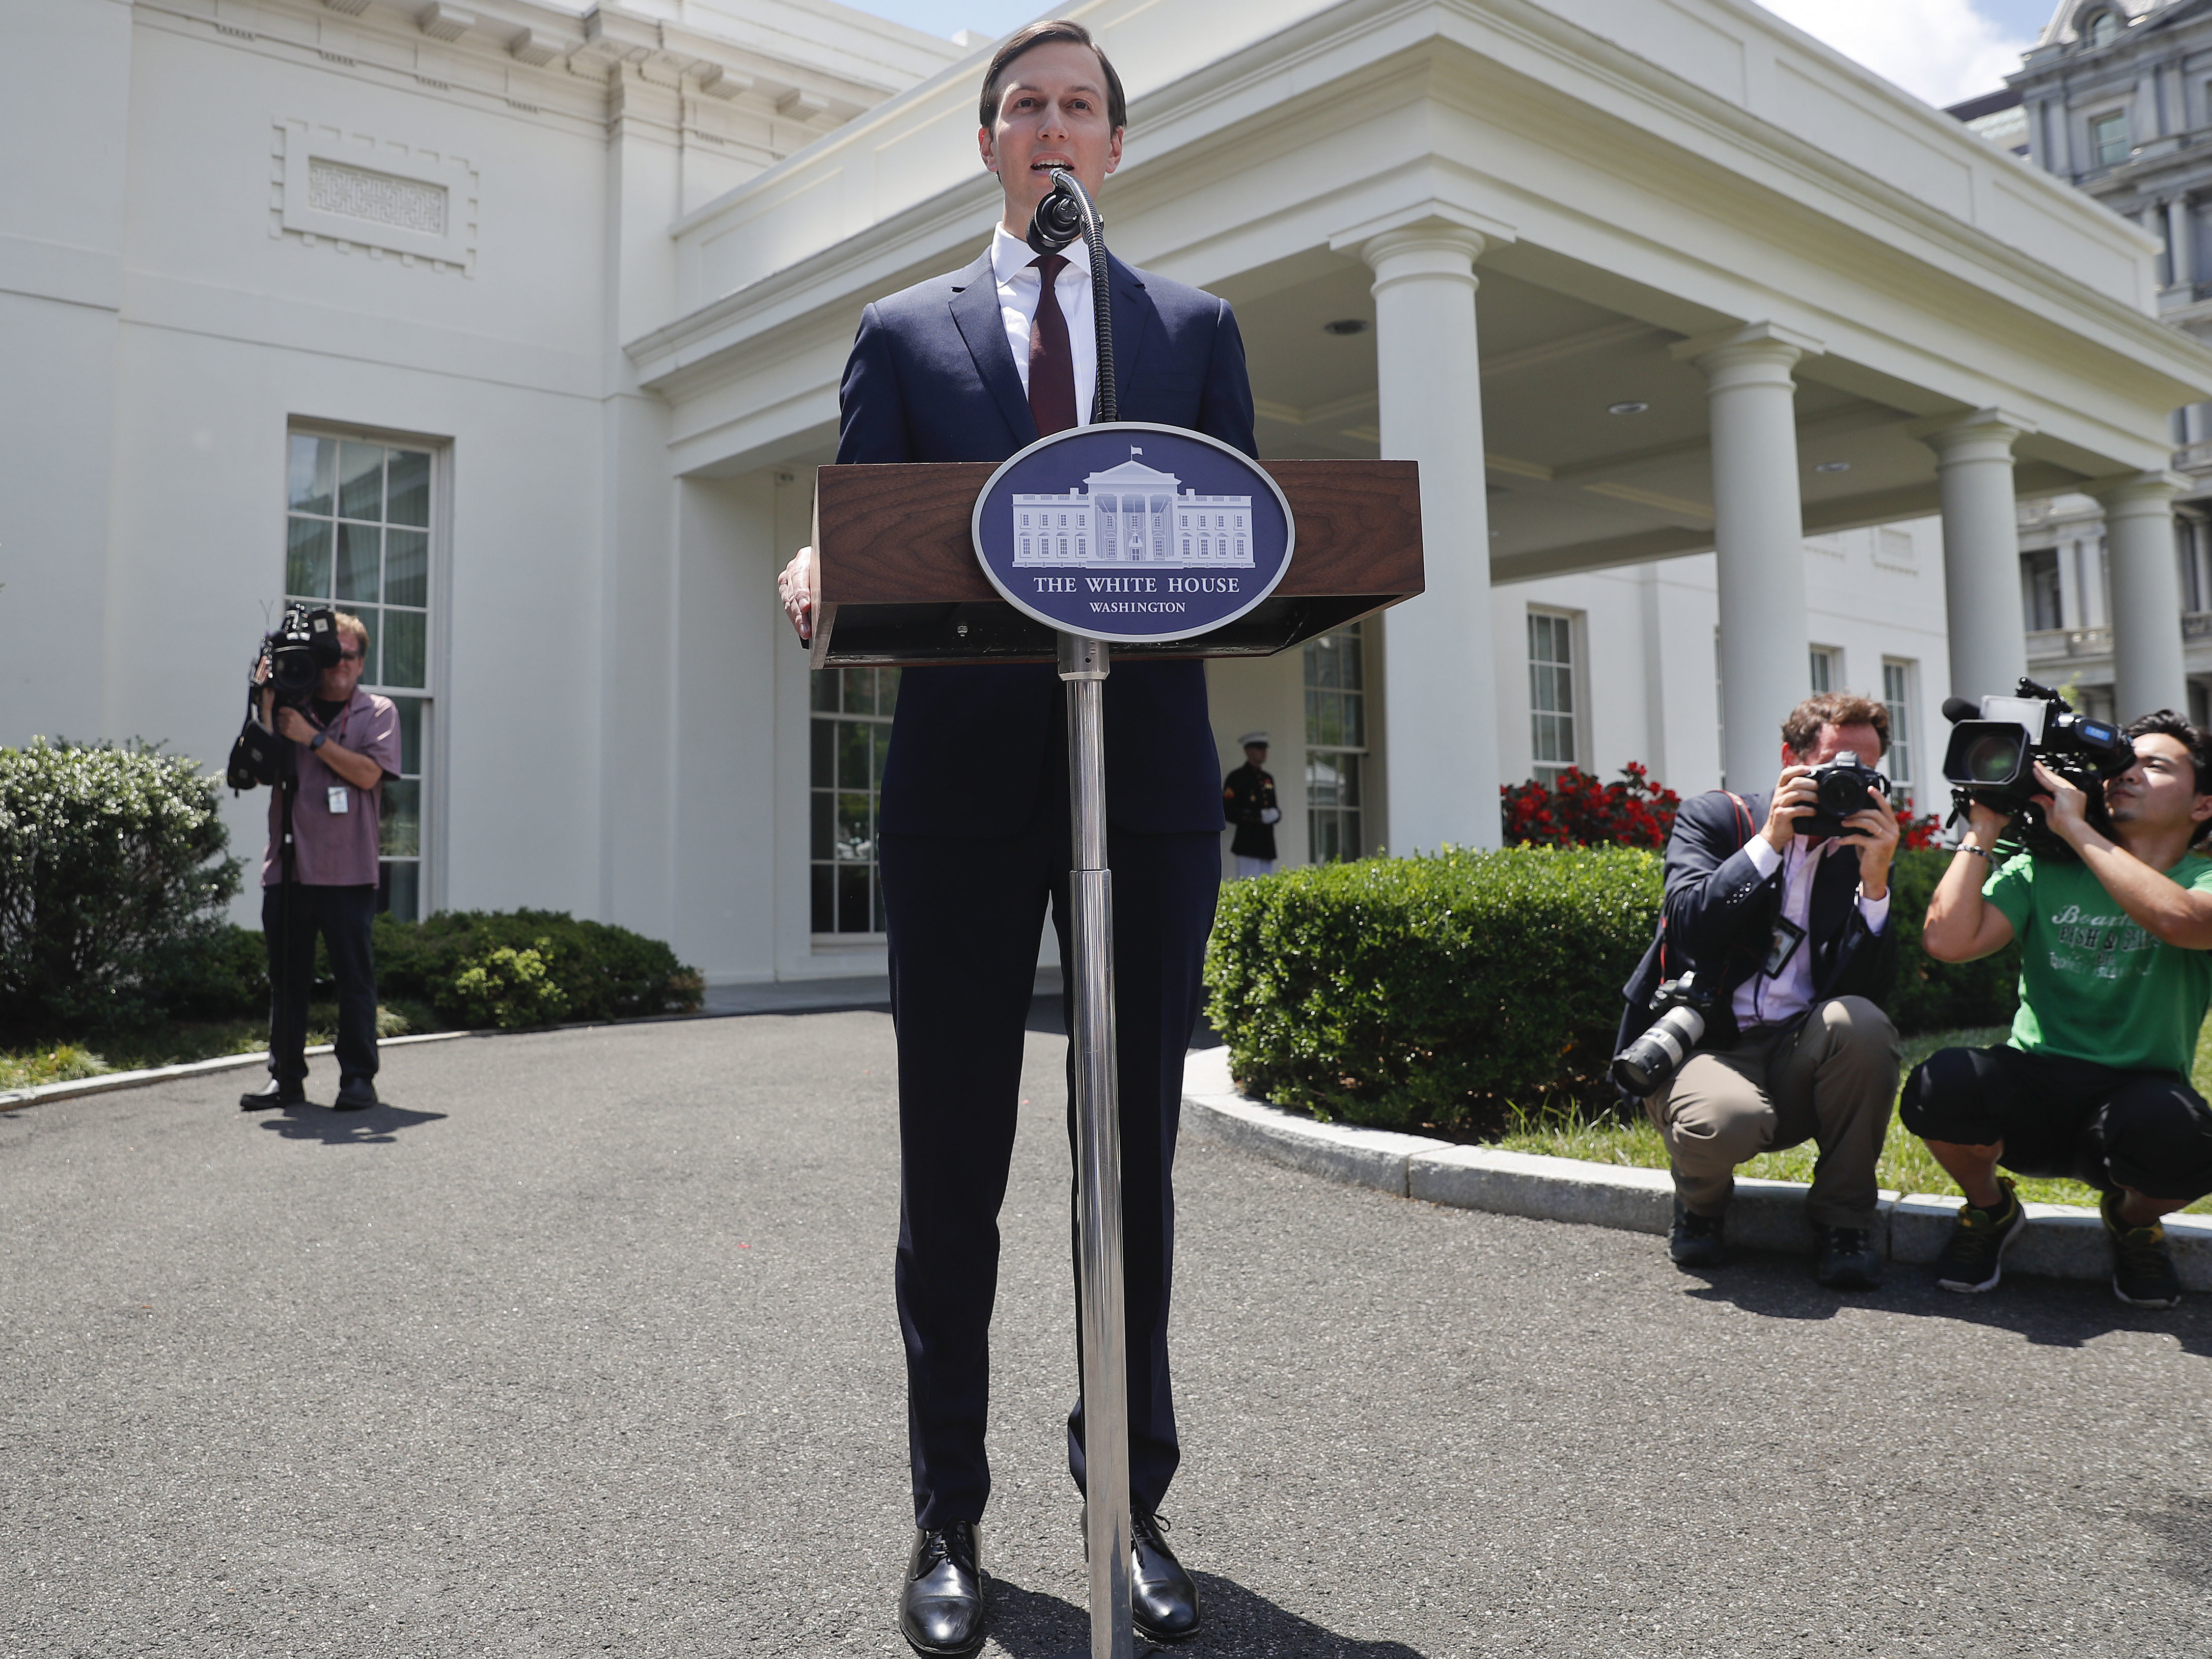 White House senior adviser Jared Kushner denied any wrongdoing in the Russia case last July, and the administration is now restoring his top-level security clearance.